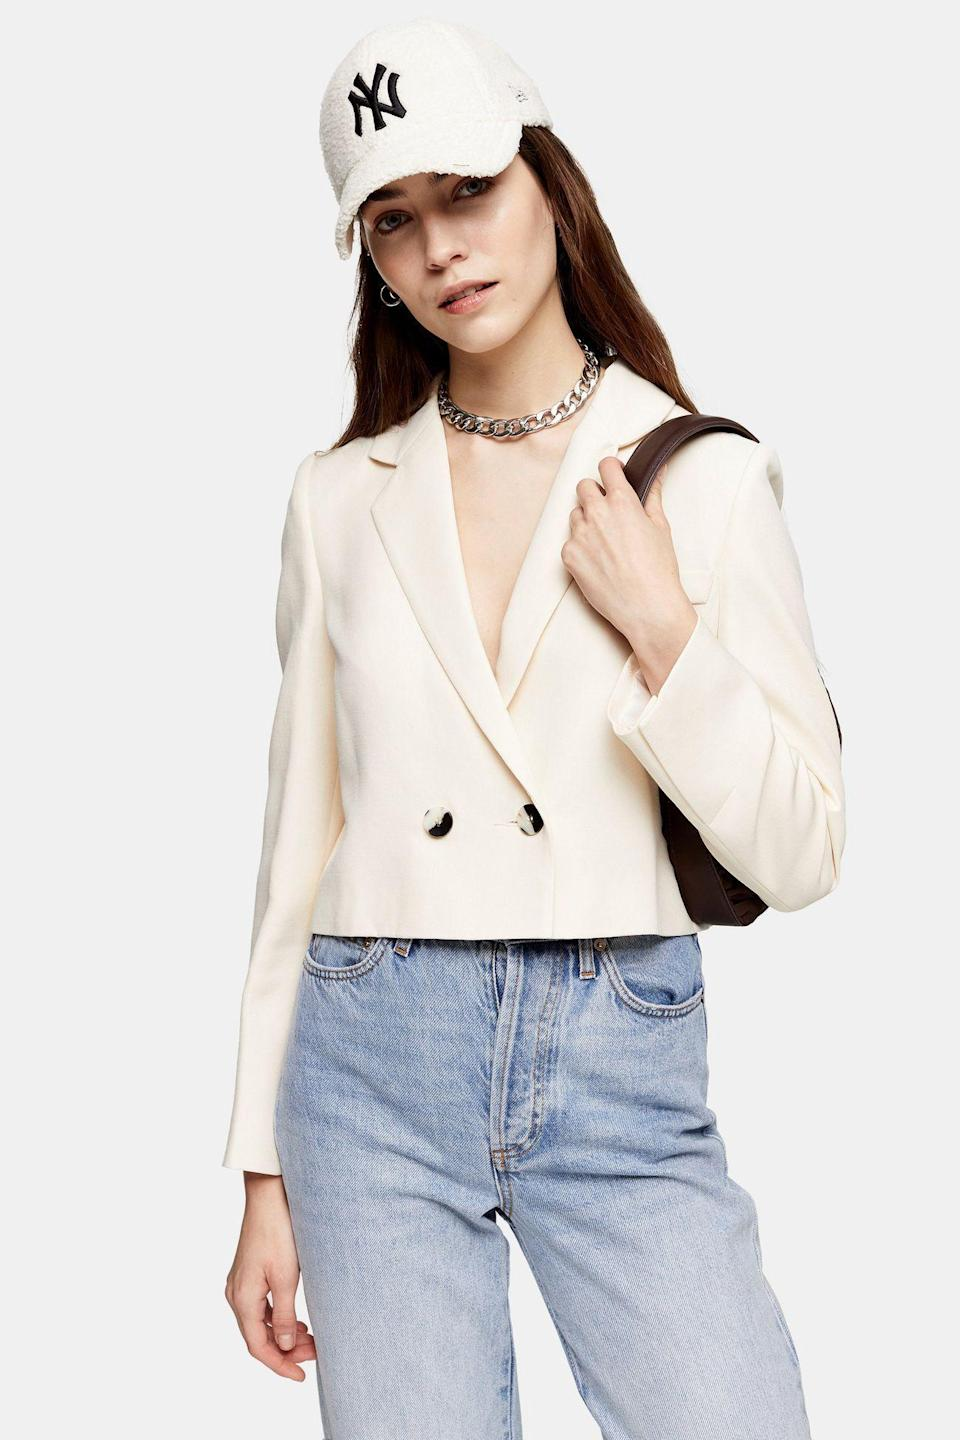 """<p><strong>Topshop</strong></p><p>topshop.com</p><p><strong>$85.00</strong></p><p><a href=""""https://go.redirectingat.com?id=74968X1596630&url=https%3A%2F%2Fus.topshop.com%2Fen%2Ftsus%2Fproduct%2Fcrop-sb-ivr-9406976&sref=https%3A%2F%2Fwww.cosmopolitan.com%2Fstyle-beauty%2Ffashion%2Fg30933395%2Ffall-fashion-trends-2020%2F"""" rel=""""nofollow noopener"""" target=""""_blank"""" data-ylk=""""slk:Shop Now"""" class=""""link rapid-noclick-resp"""">Shop Now</a></p><p>Grab a simple blazer that's long enough for business, but short enough to be considered cropped. </p>"""